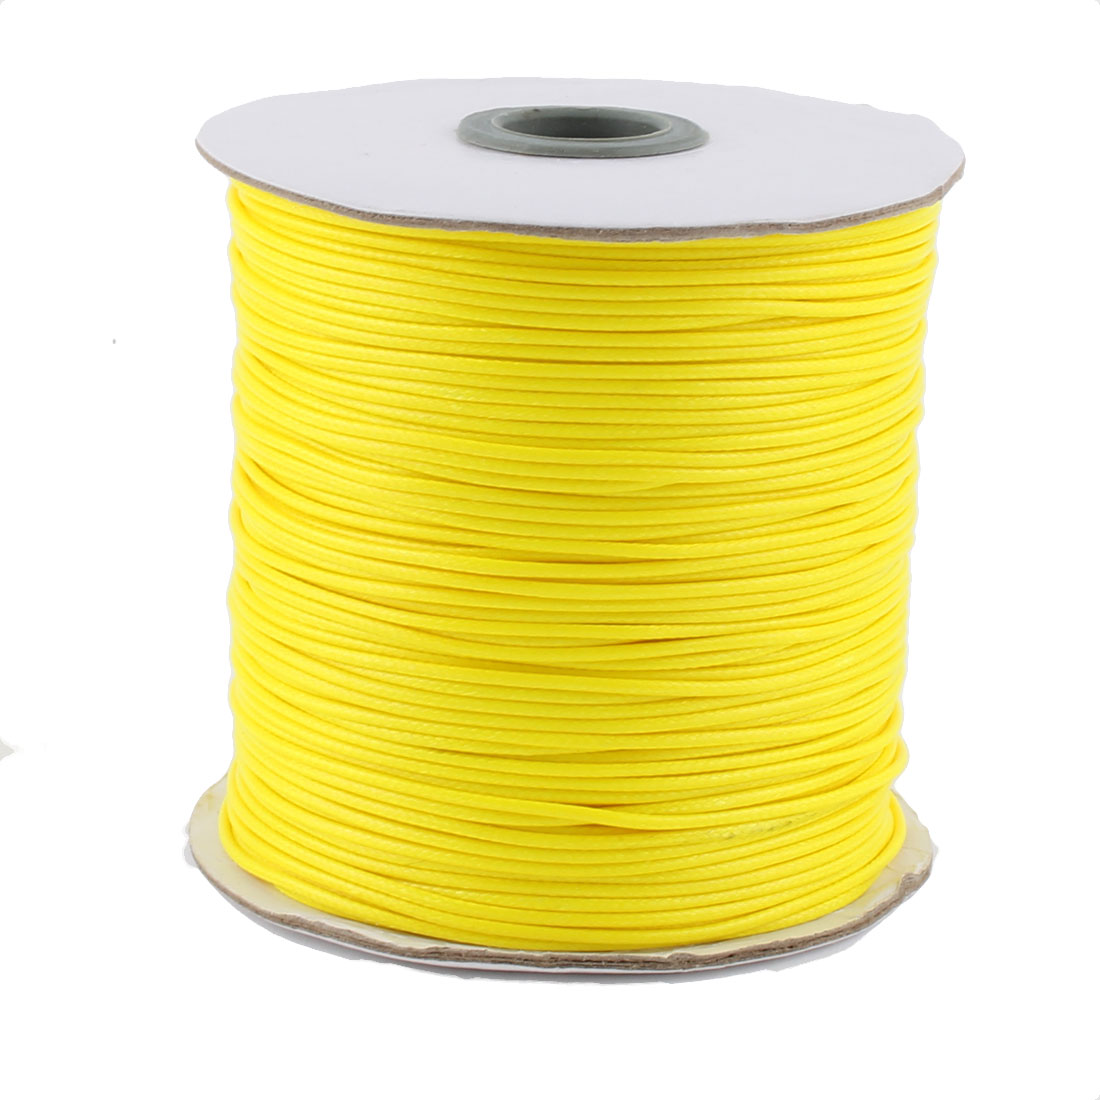 DIY Bracelet Necklace Cotton Waxed Making String Beading Thread Cord Roll Yellow 190 Yard